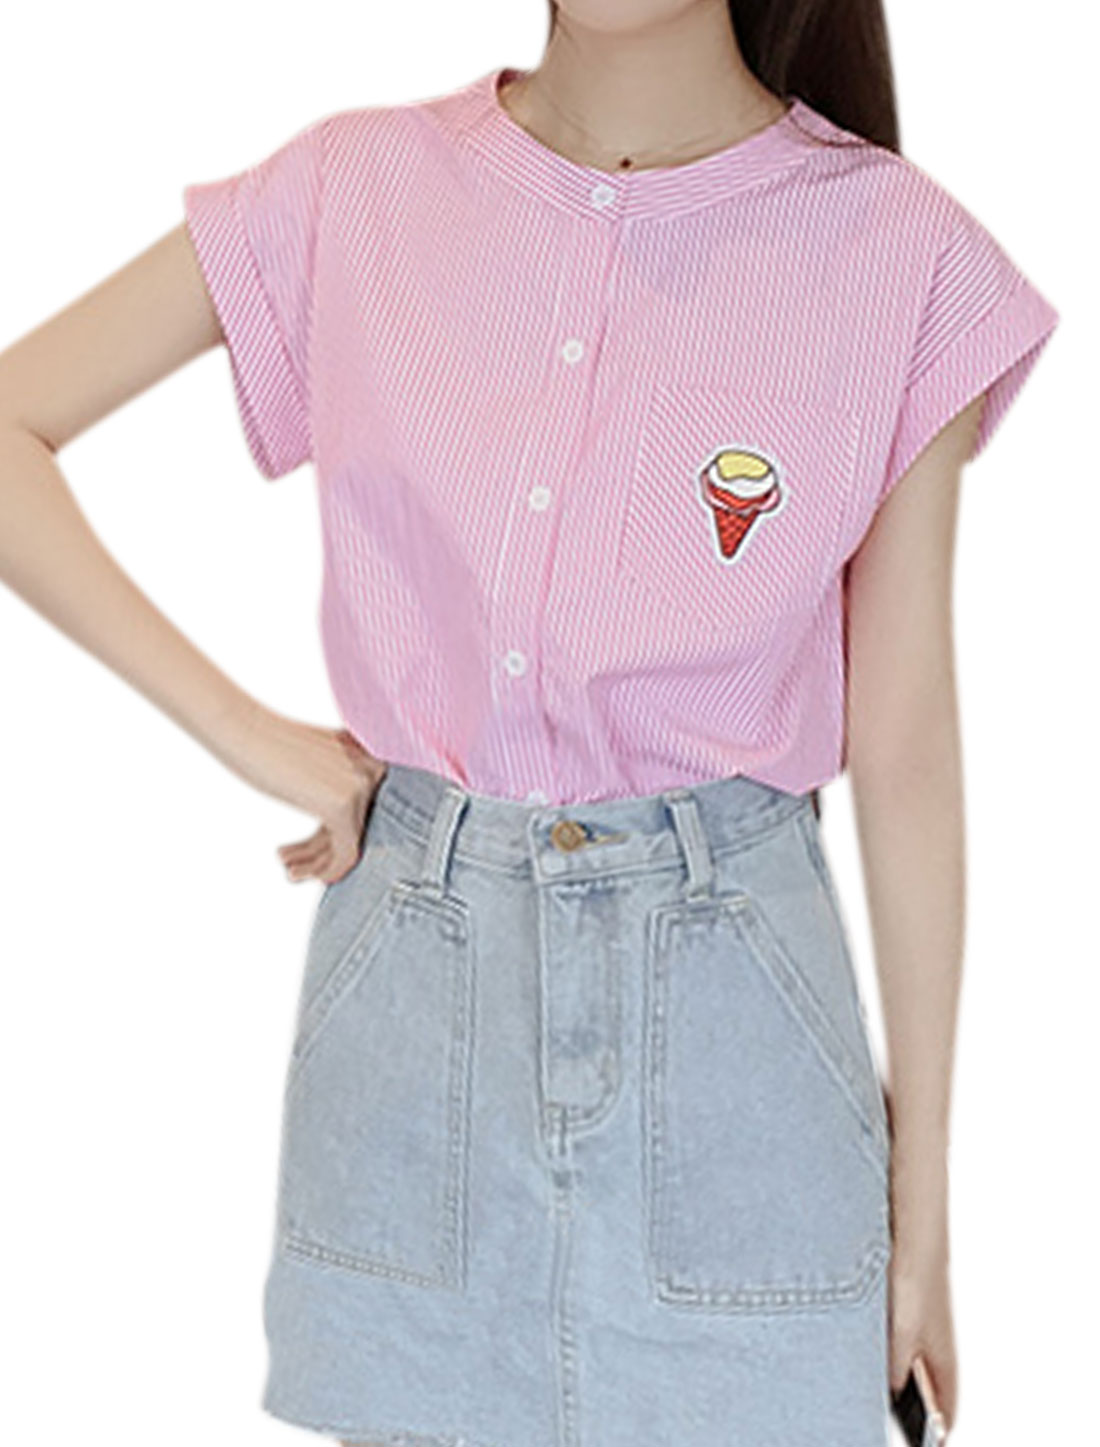 Women Button Down Stripes Ice-cream Embossed Top Pink XS